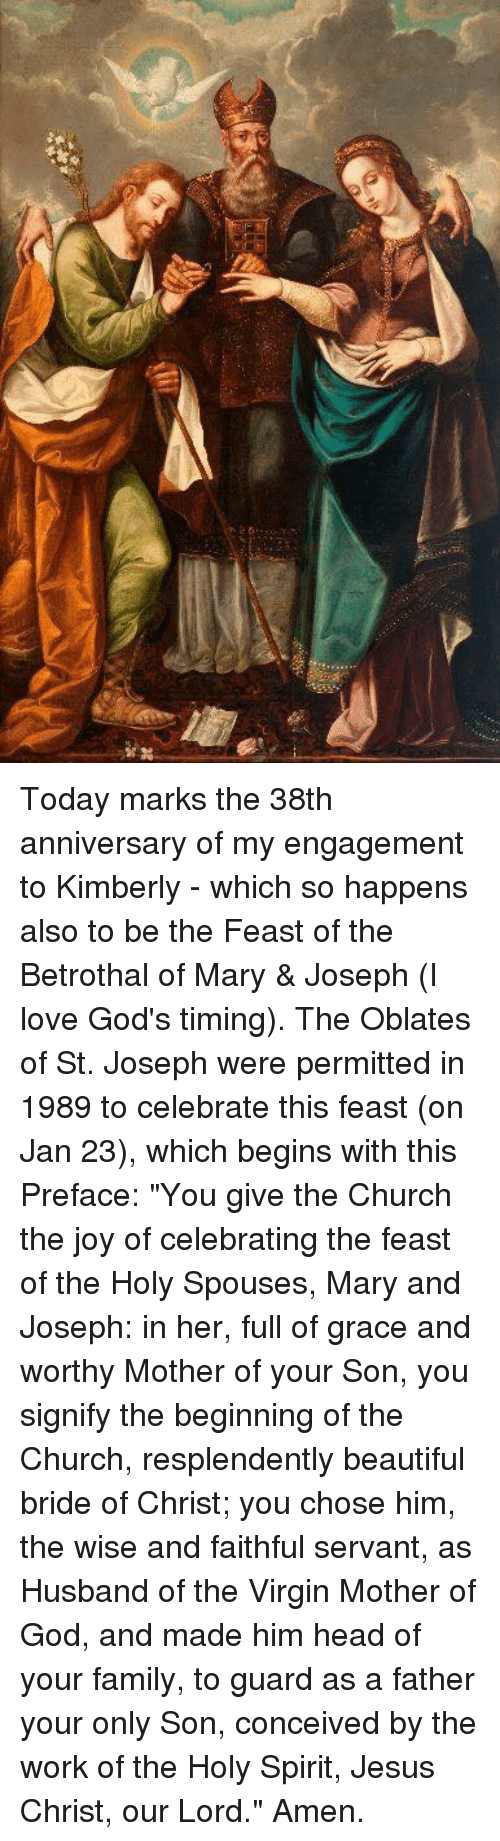 "Memes, Virgin, and Virginity: Today marks the 38th anniversary of my engagement to Kimberly - which so happens also to be the Feast of the Betrothal of Mary & Joseph (I love God's timing).    The Oblates of St. Joseph were permitted in 1989 to celebrate this feast (on Jan 23), which begins with this Preface:  ""You give the Church the joy of celebrating the feast of the Holy Spouses, Mary and Joseph: in her, full of grace and worthy Mother of your Son, you signify the beginning of the Church, resplendently beautiful bride of Christ; you chose him, the wise and faithful servant, as Husband of the Virgin Mother of God, and made him head of your family, to guard as a father your only Son, conceived by the work of the Holy Spirit, Jesus Christ, our Lord."" Amen."